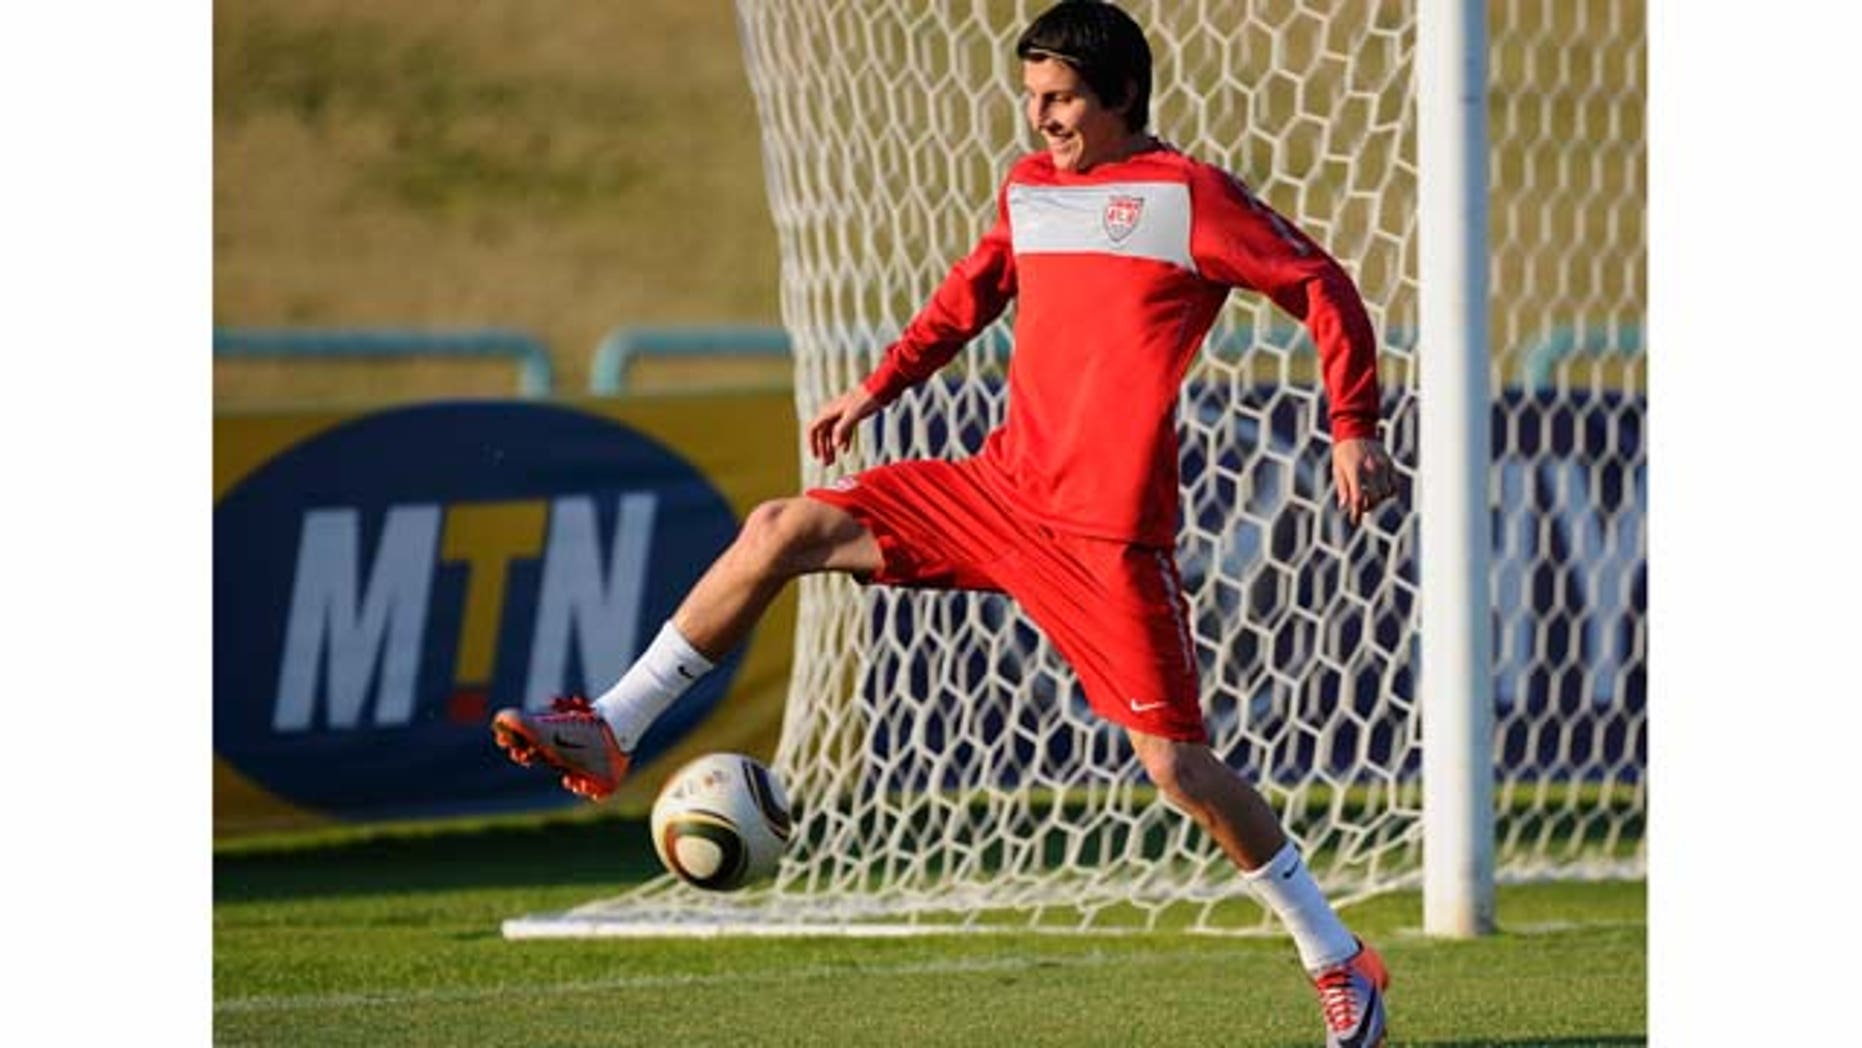 PRETORIA, SOUTH AFRICA - JUNE 24:  Jose Torres of USA controls the ball during training session on June 24, 2010 in Pretoria, South Africa. United States will play their second round World Cup match against Ghana on Saturday, June 26, 2010, at Royal Bafokeng Stadium in Rustenburg, South Africa.  (Photo by Kevork Djansezian/Getty Images)